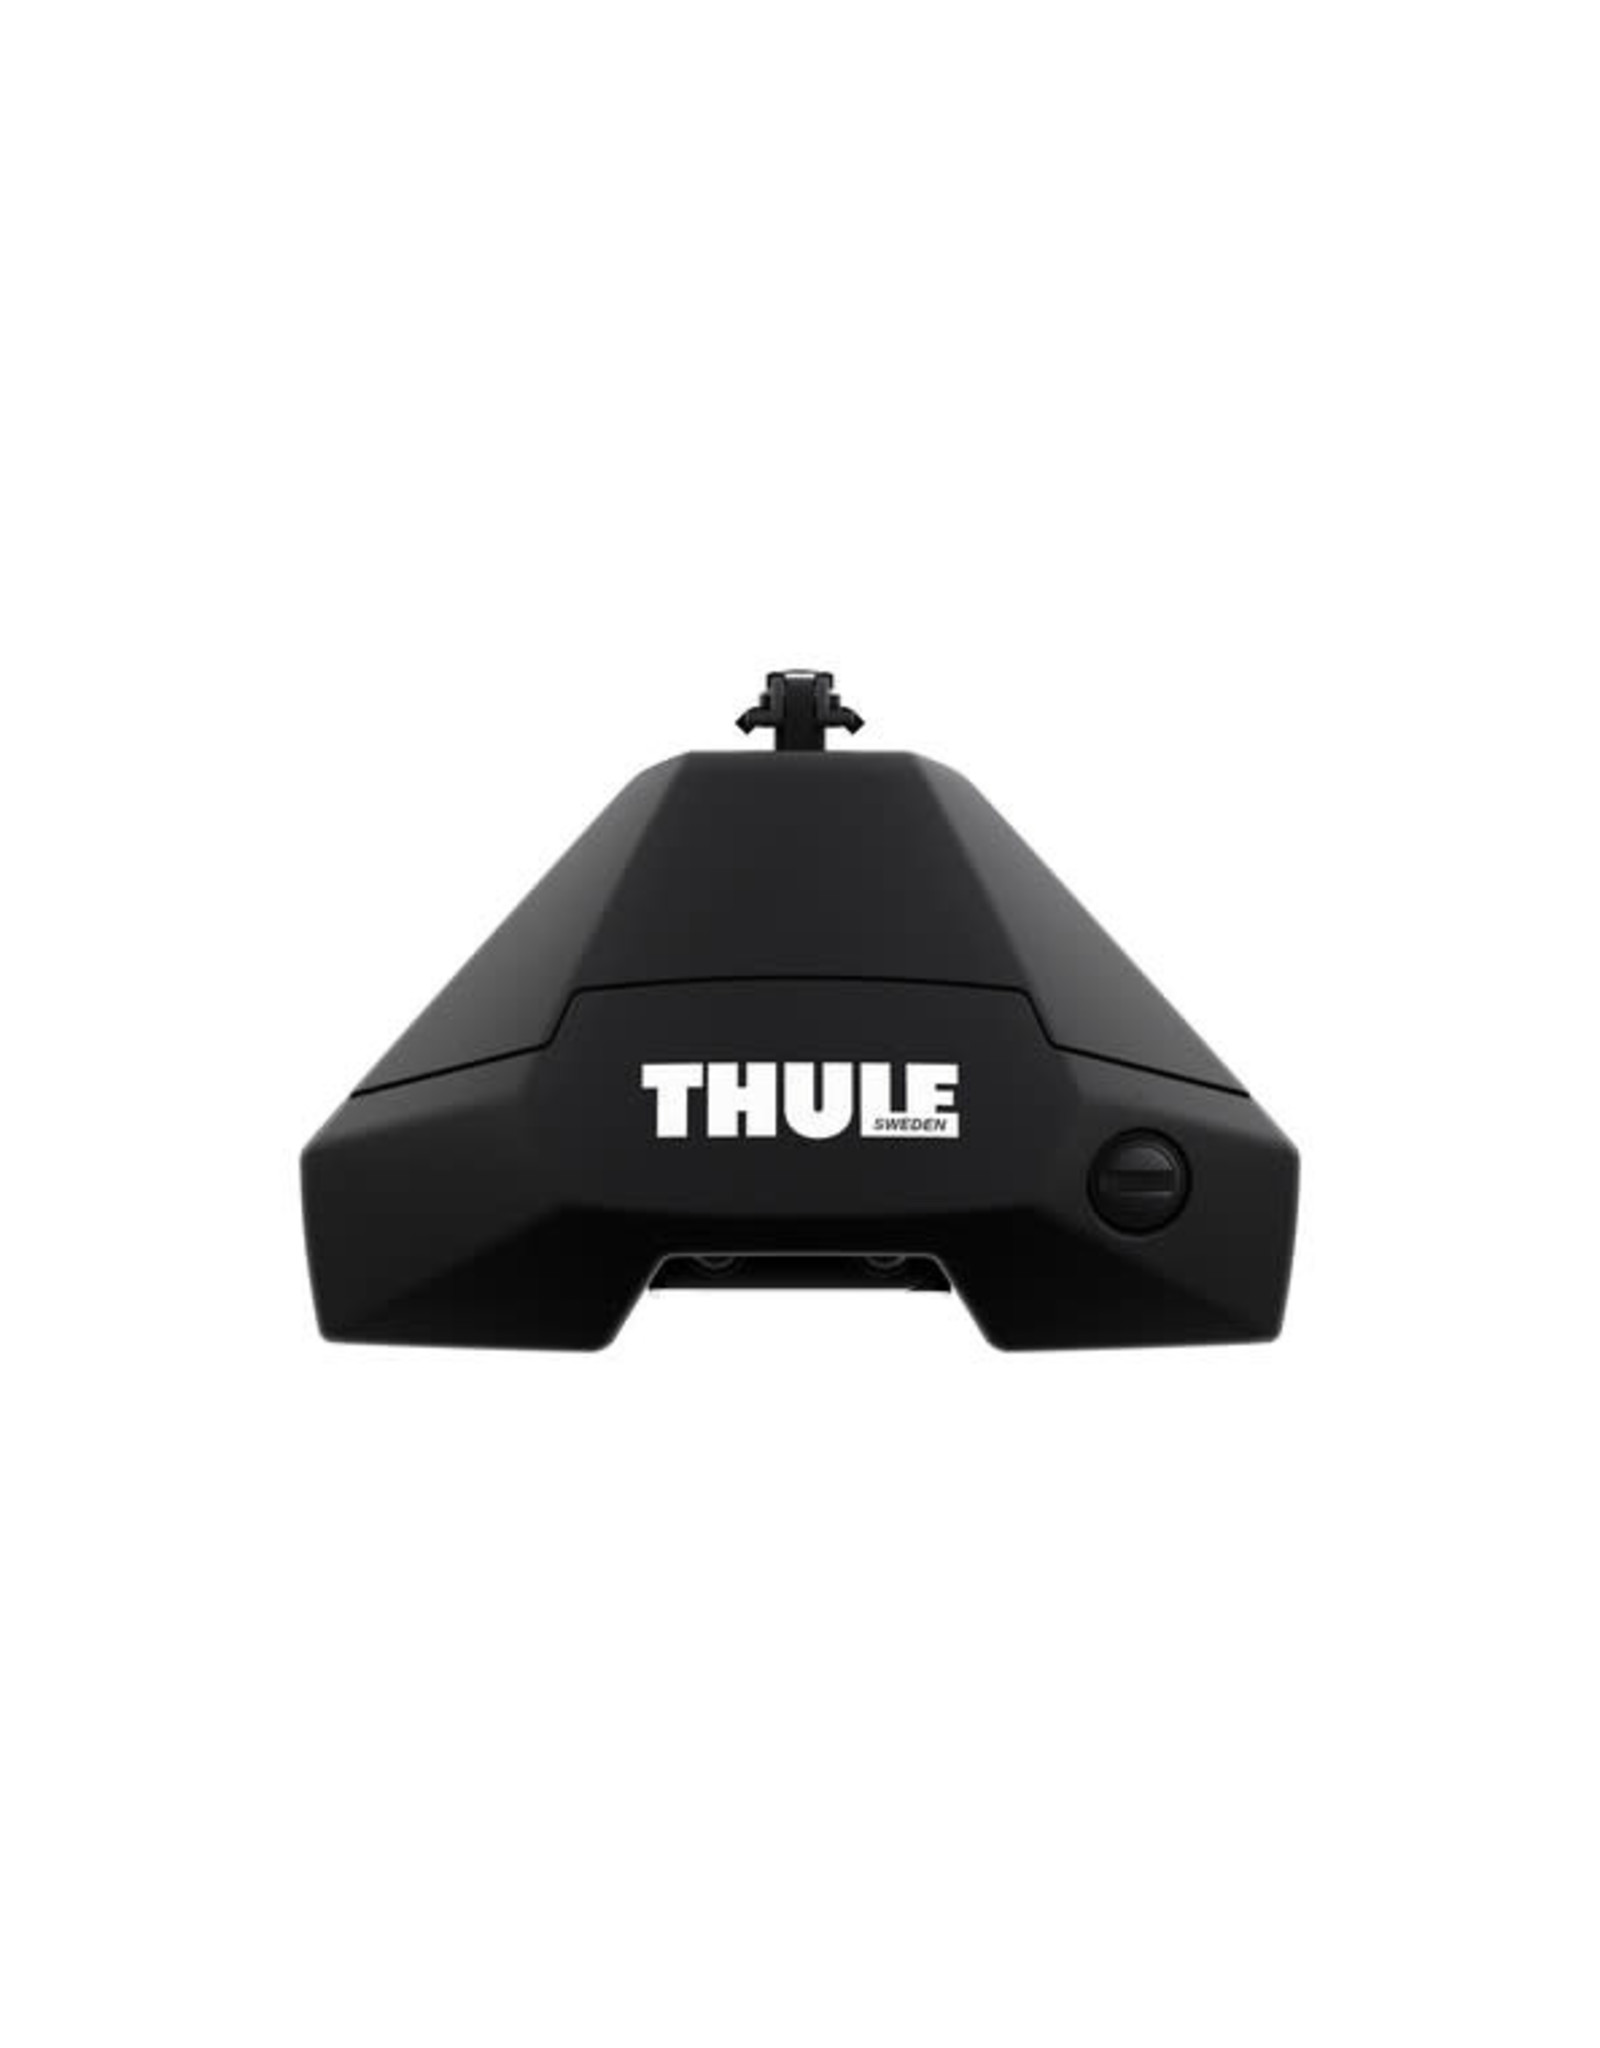 Thule Thule Evo mounting stand